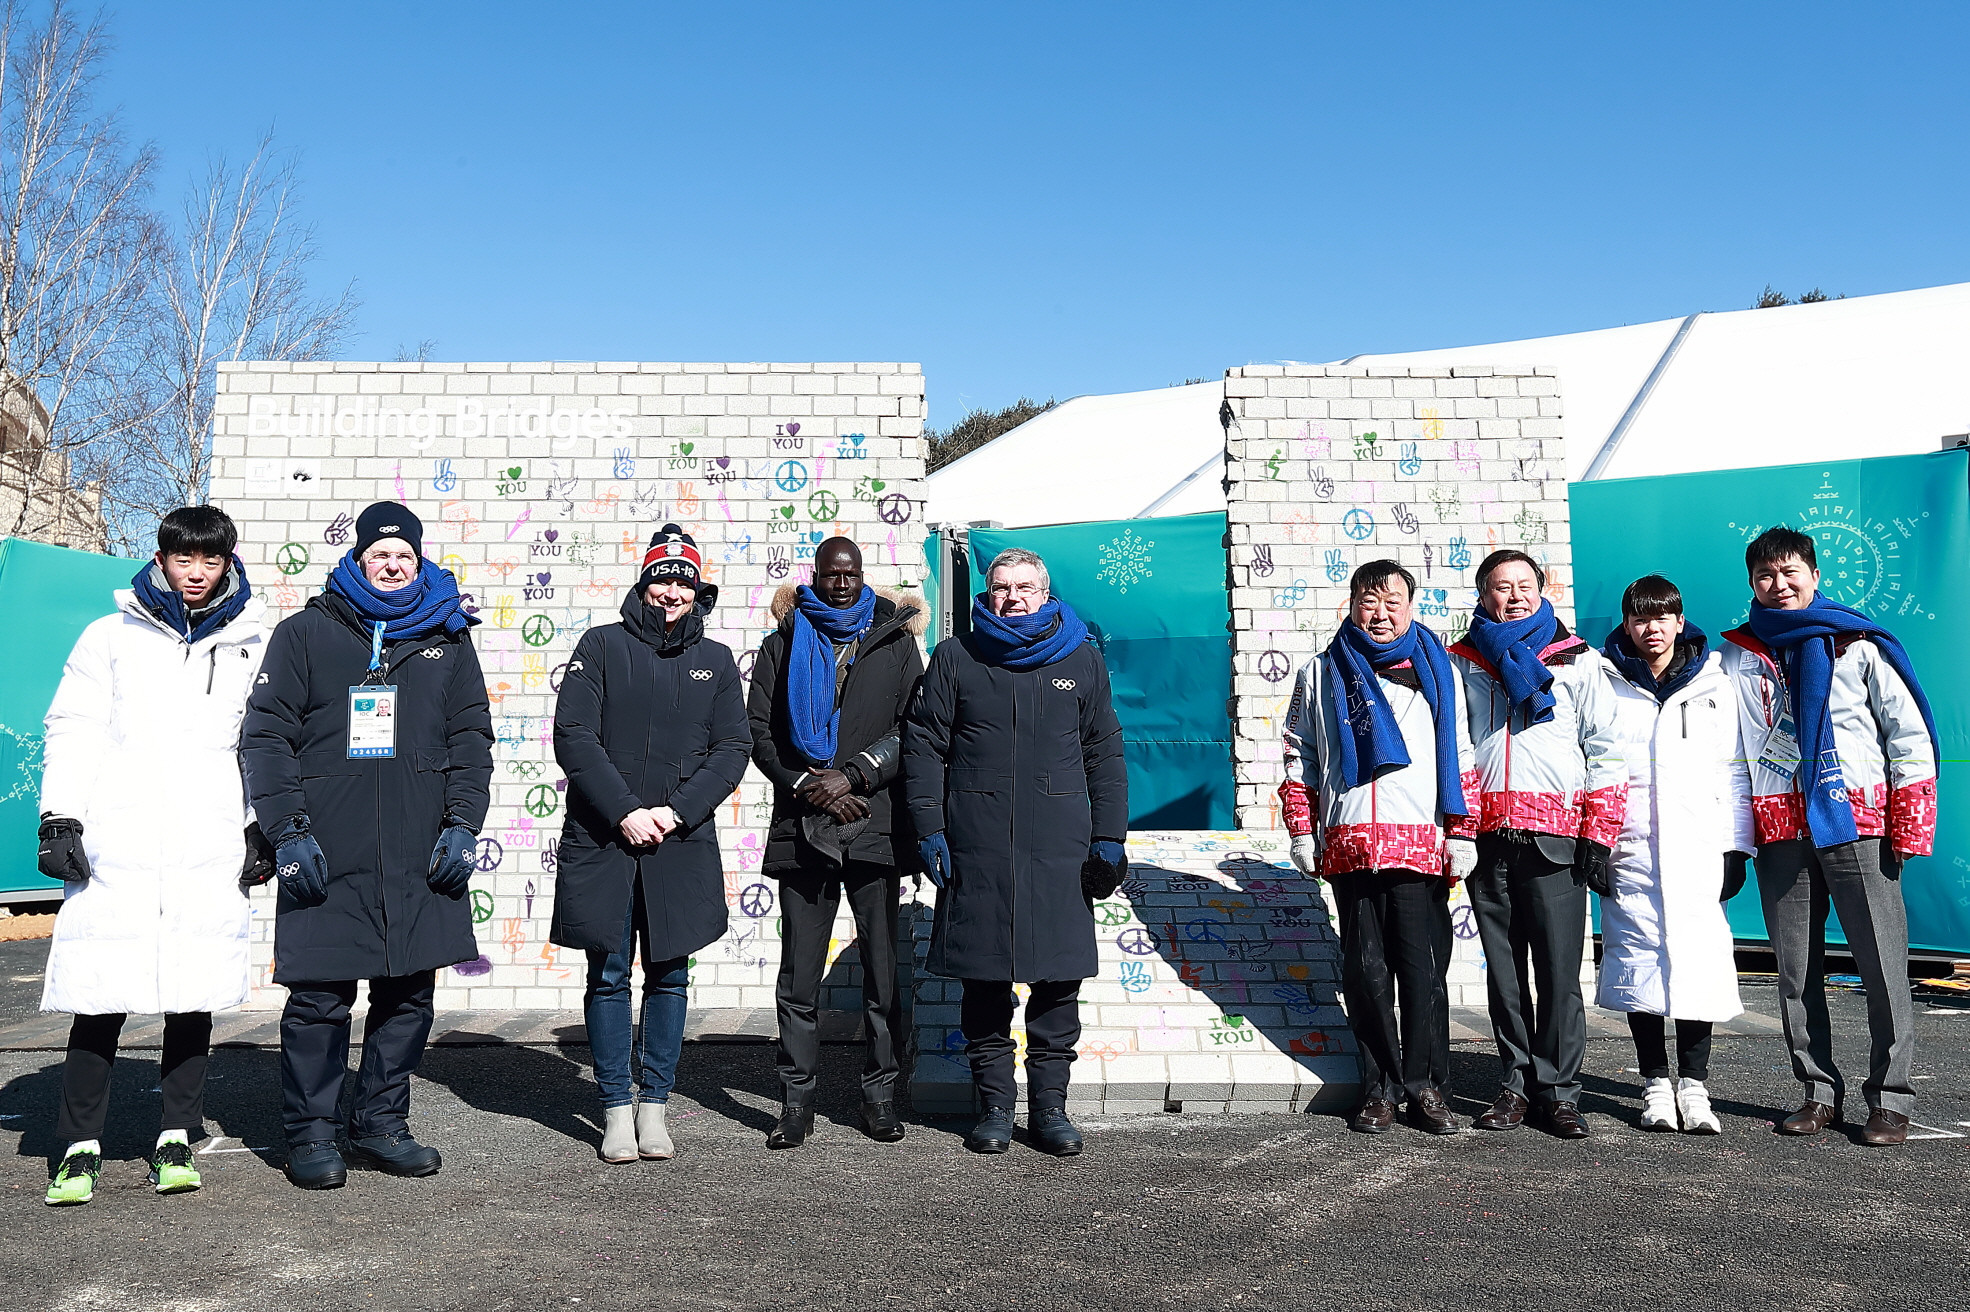 Thomas Bach, the IOC President, centre, was joined by Lee Hee-beom, the head of Pyeonchang 2018, fourth right, at the unveiling of the Olympic Truce Mural ©Pyeongchang 2018